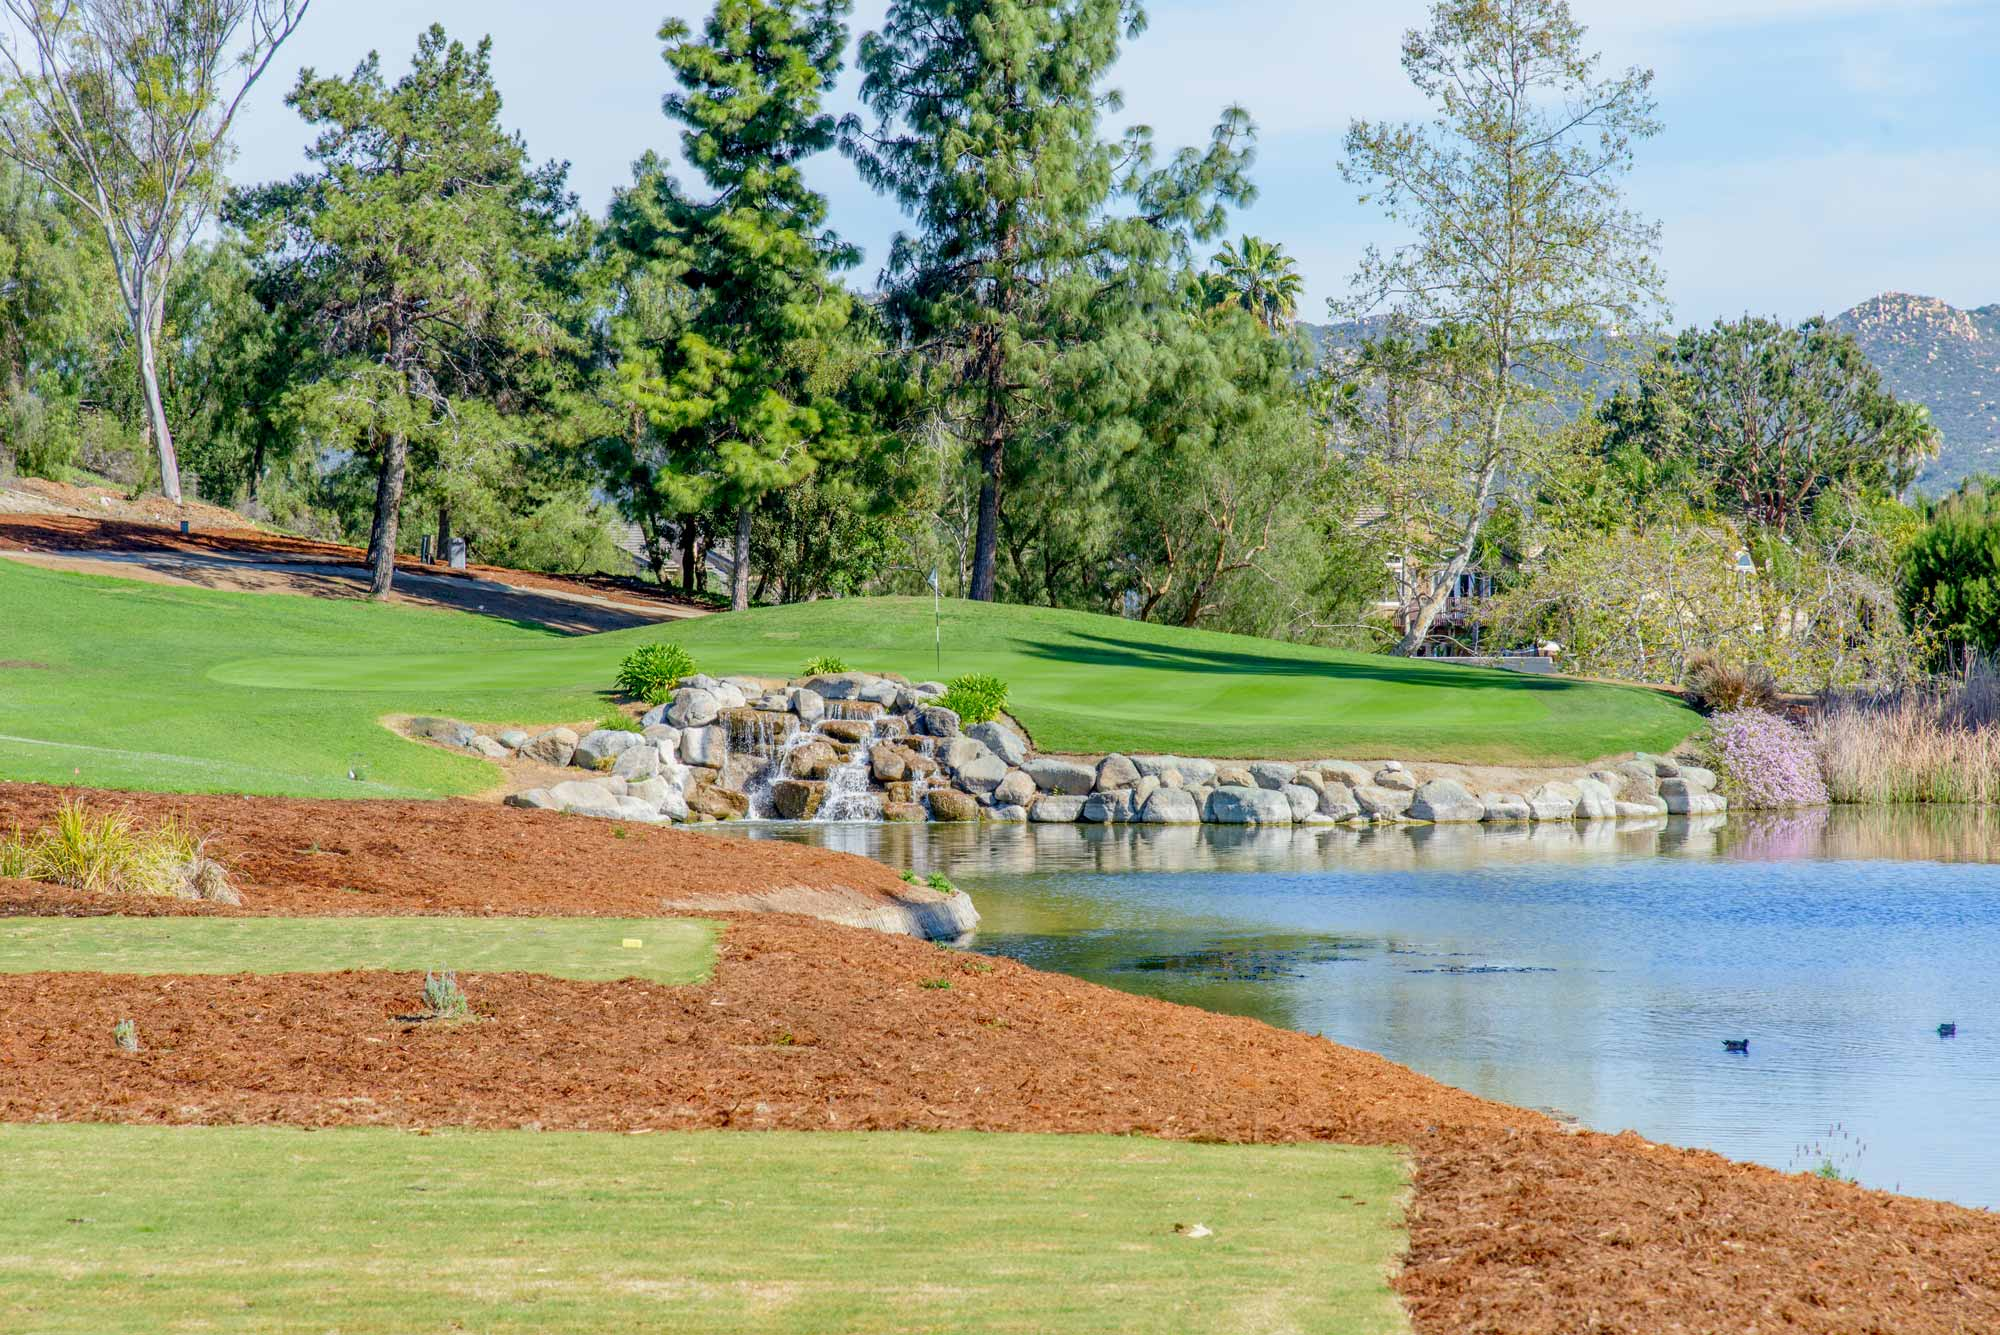 """Future of golf"""" on display at Carmel Mountain Ranch"""